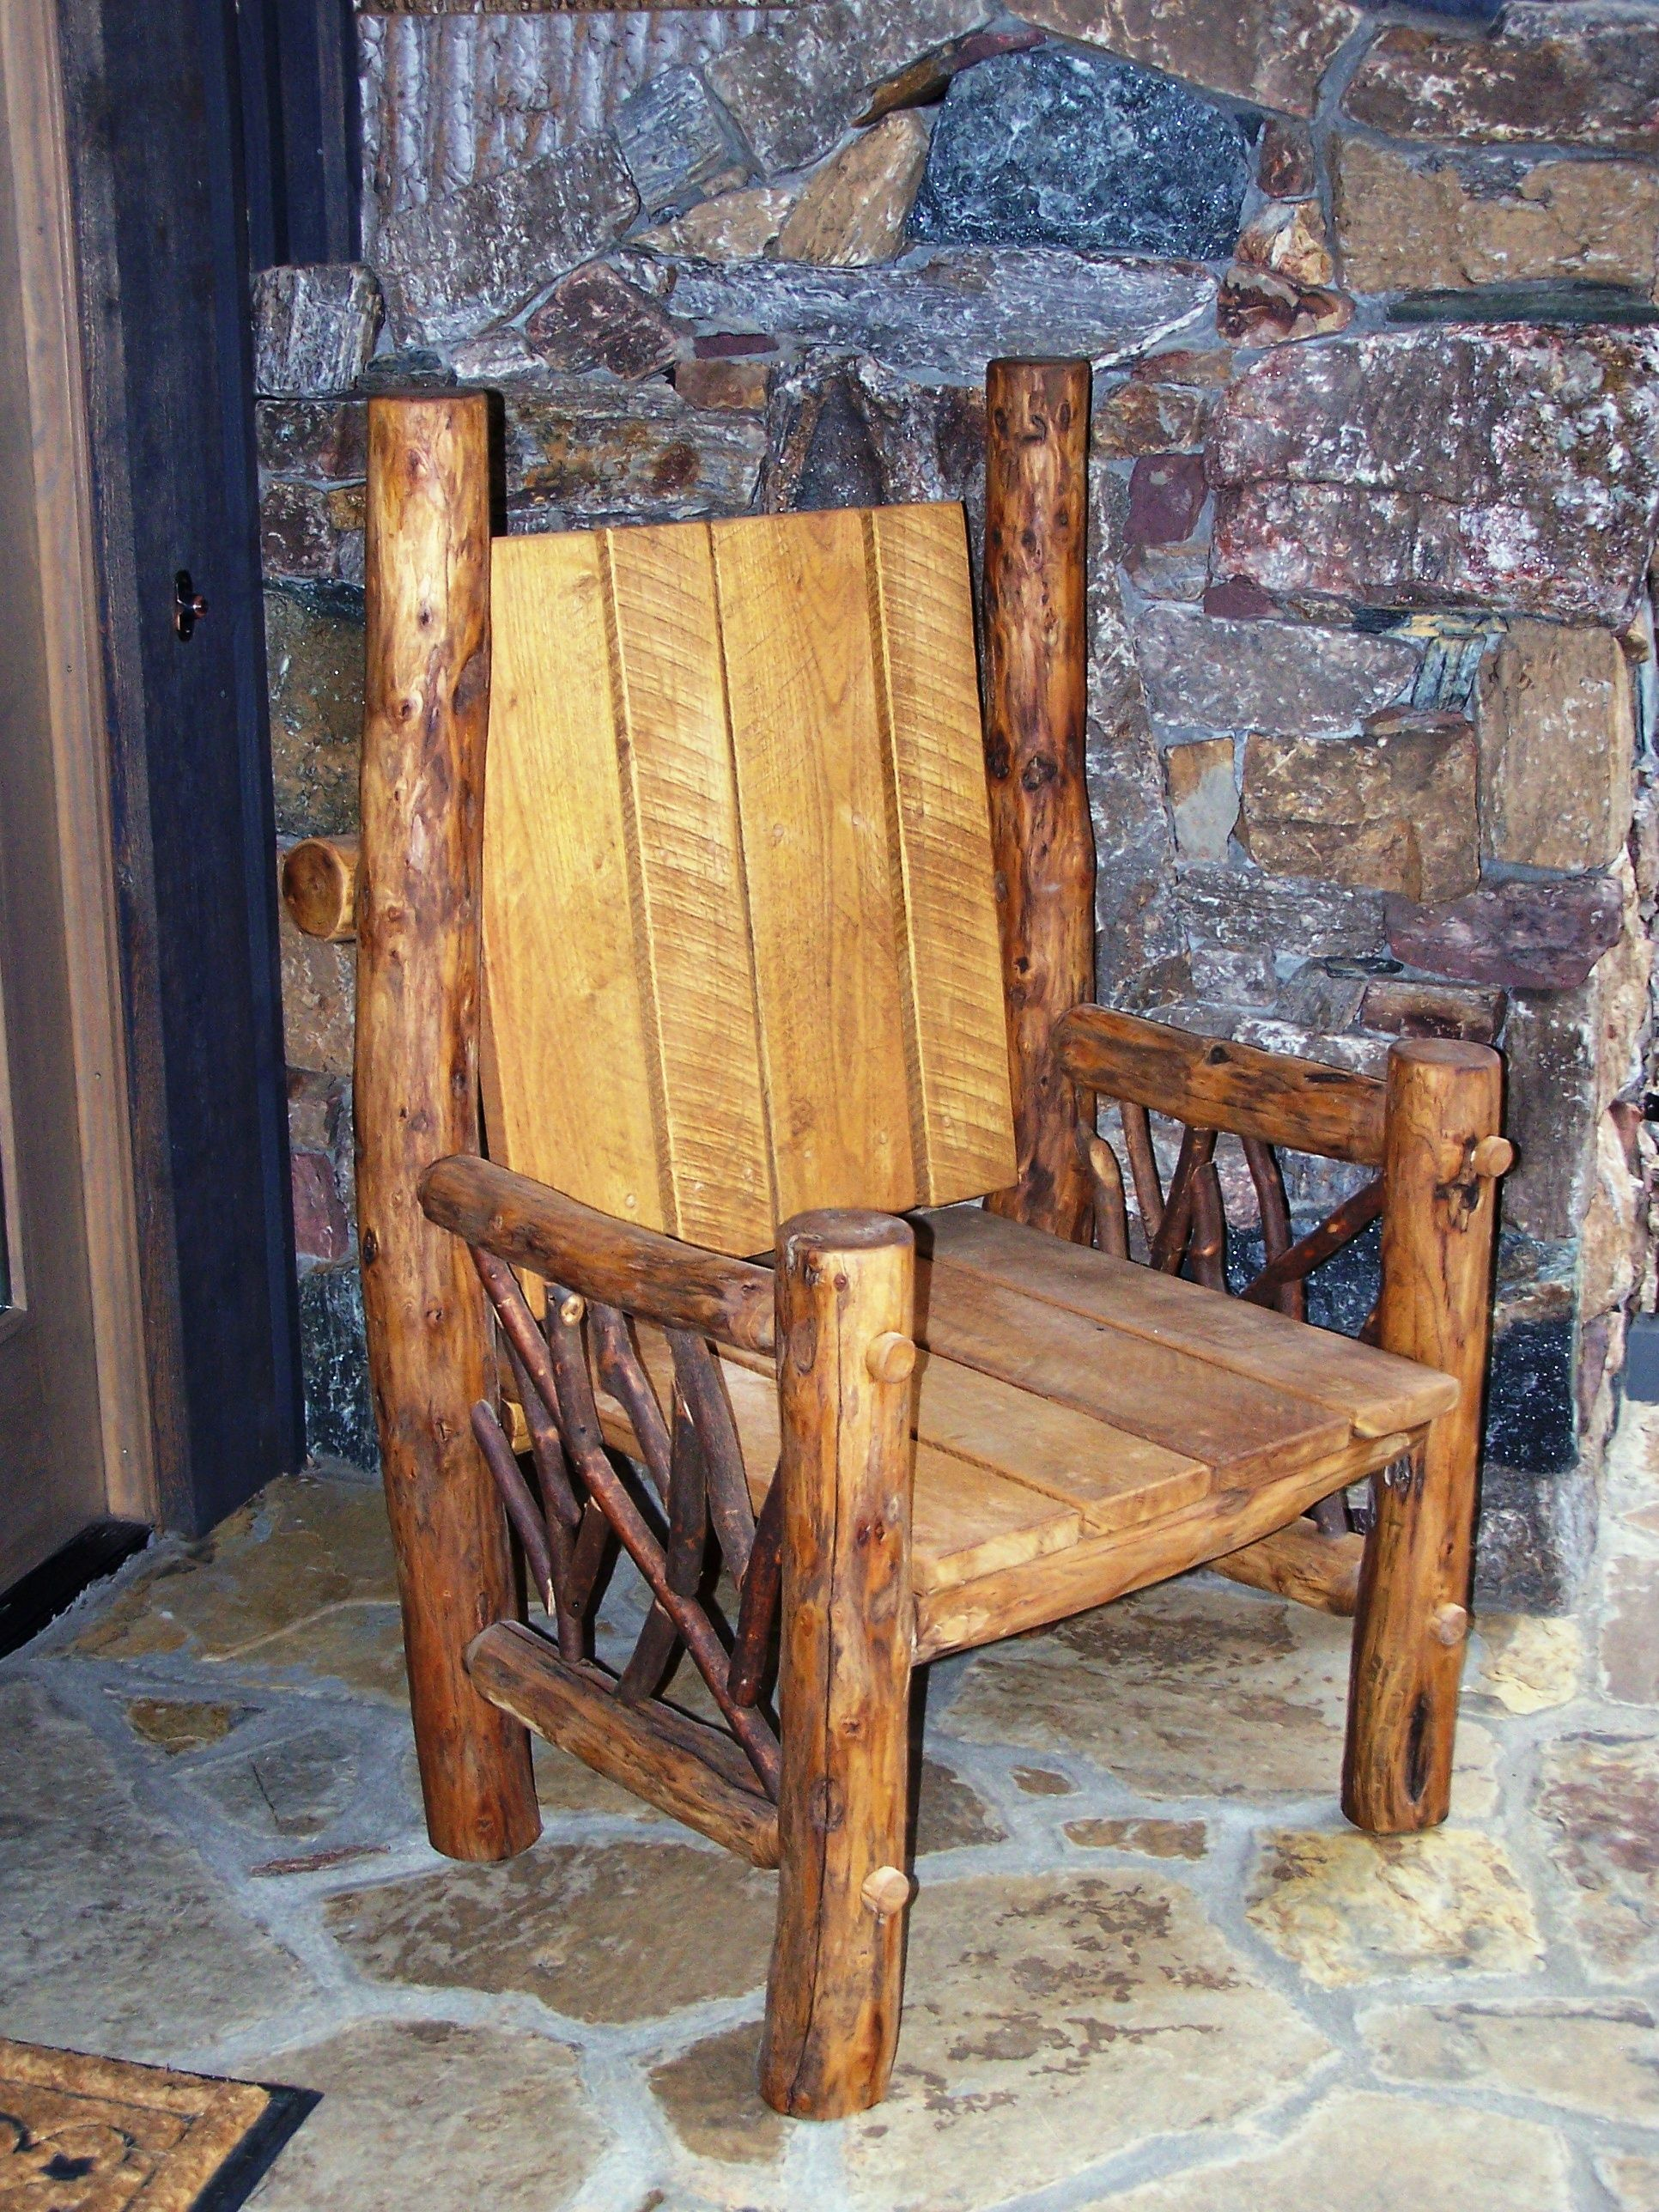 Rustic Chair Love It Porches Patios And Landscaping